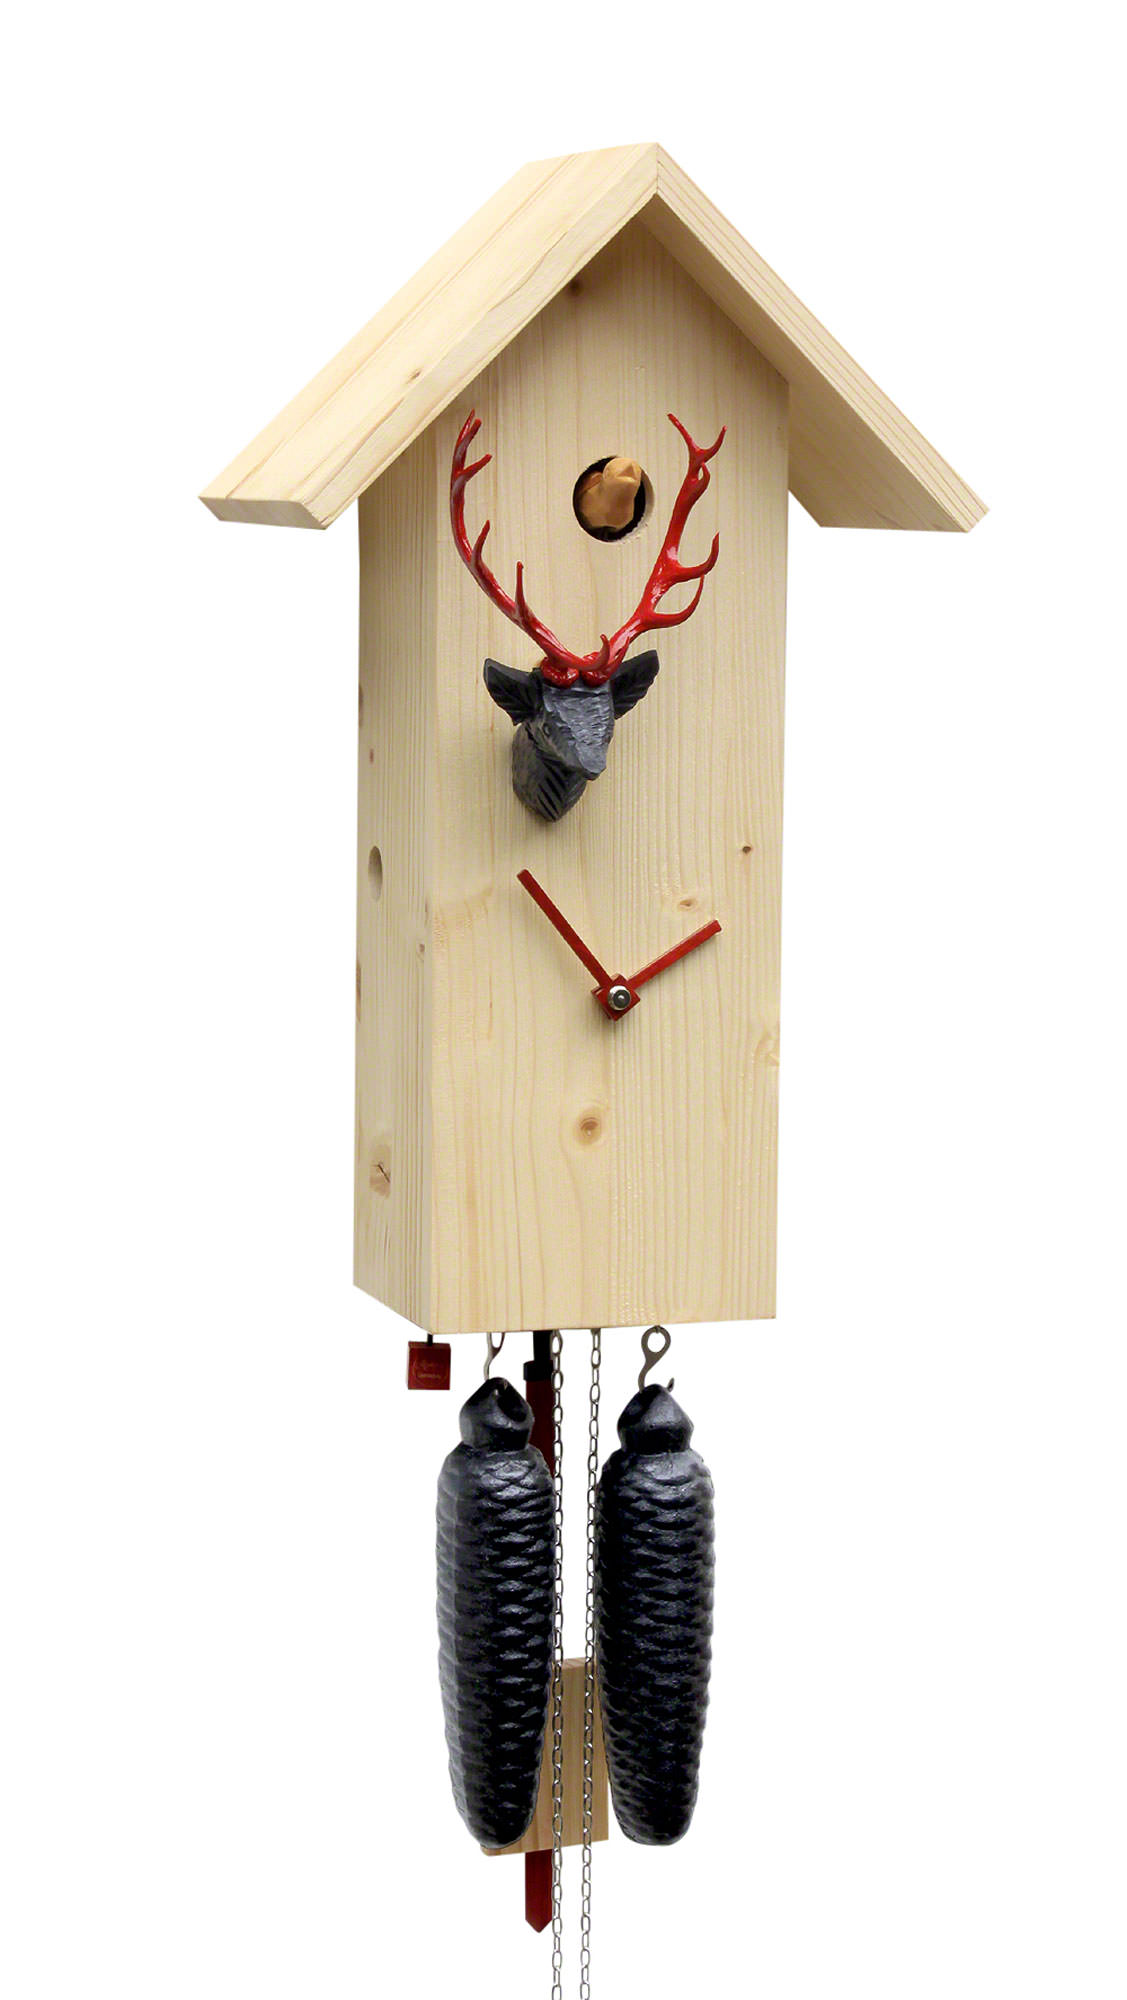 Cuckoo clock 8 day movement modern art style 41cm by rombach haas slm3h 11 - Contemporary cuckoo clock ...